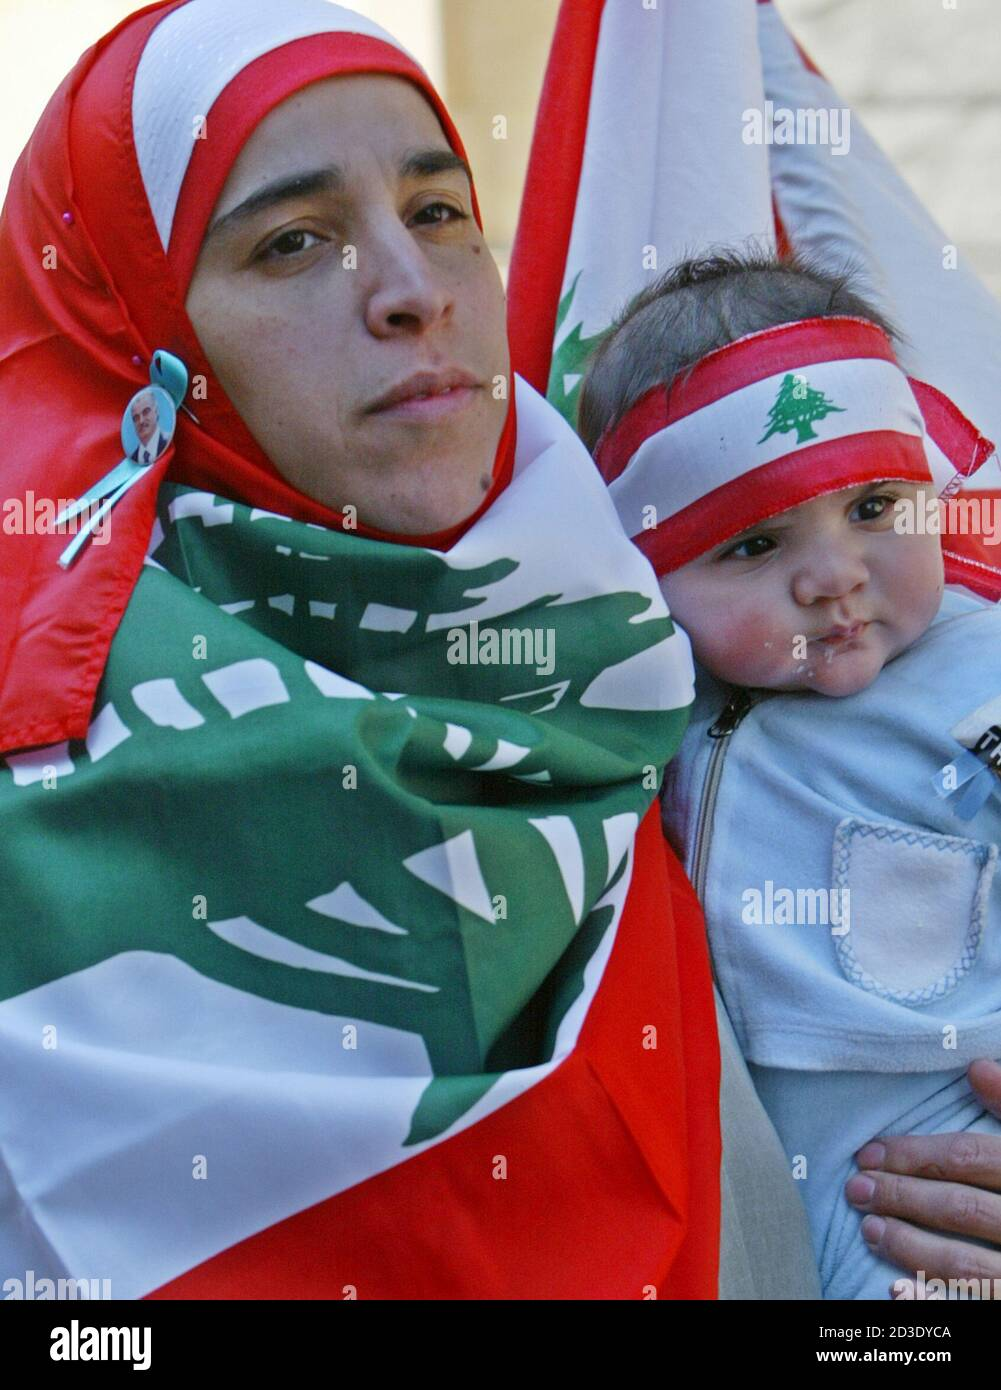 A woman, wrapped in Lebanon's national flag, carries her baby during an anti-Syrian rally in Beirut March 14, 2005. Hundreds of thousands of anti-Syrian protesters flooded central Beirut on Monday in what witnesses said was Lebanon's biggest demonstration since former prime minister Rafik al-Hariri's killing exactly a month ago. REUTERS/ Sharif Karim  JS/CCK Stock Photo